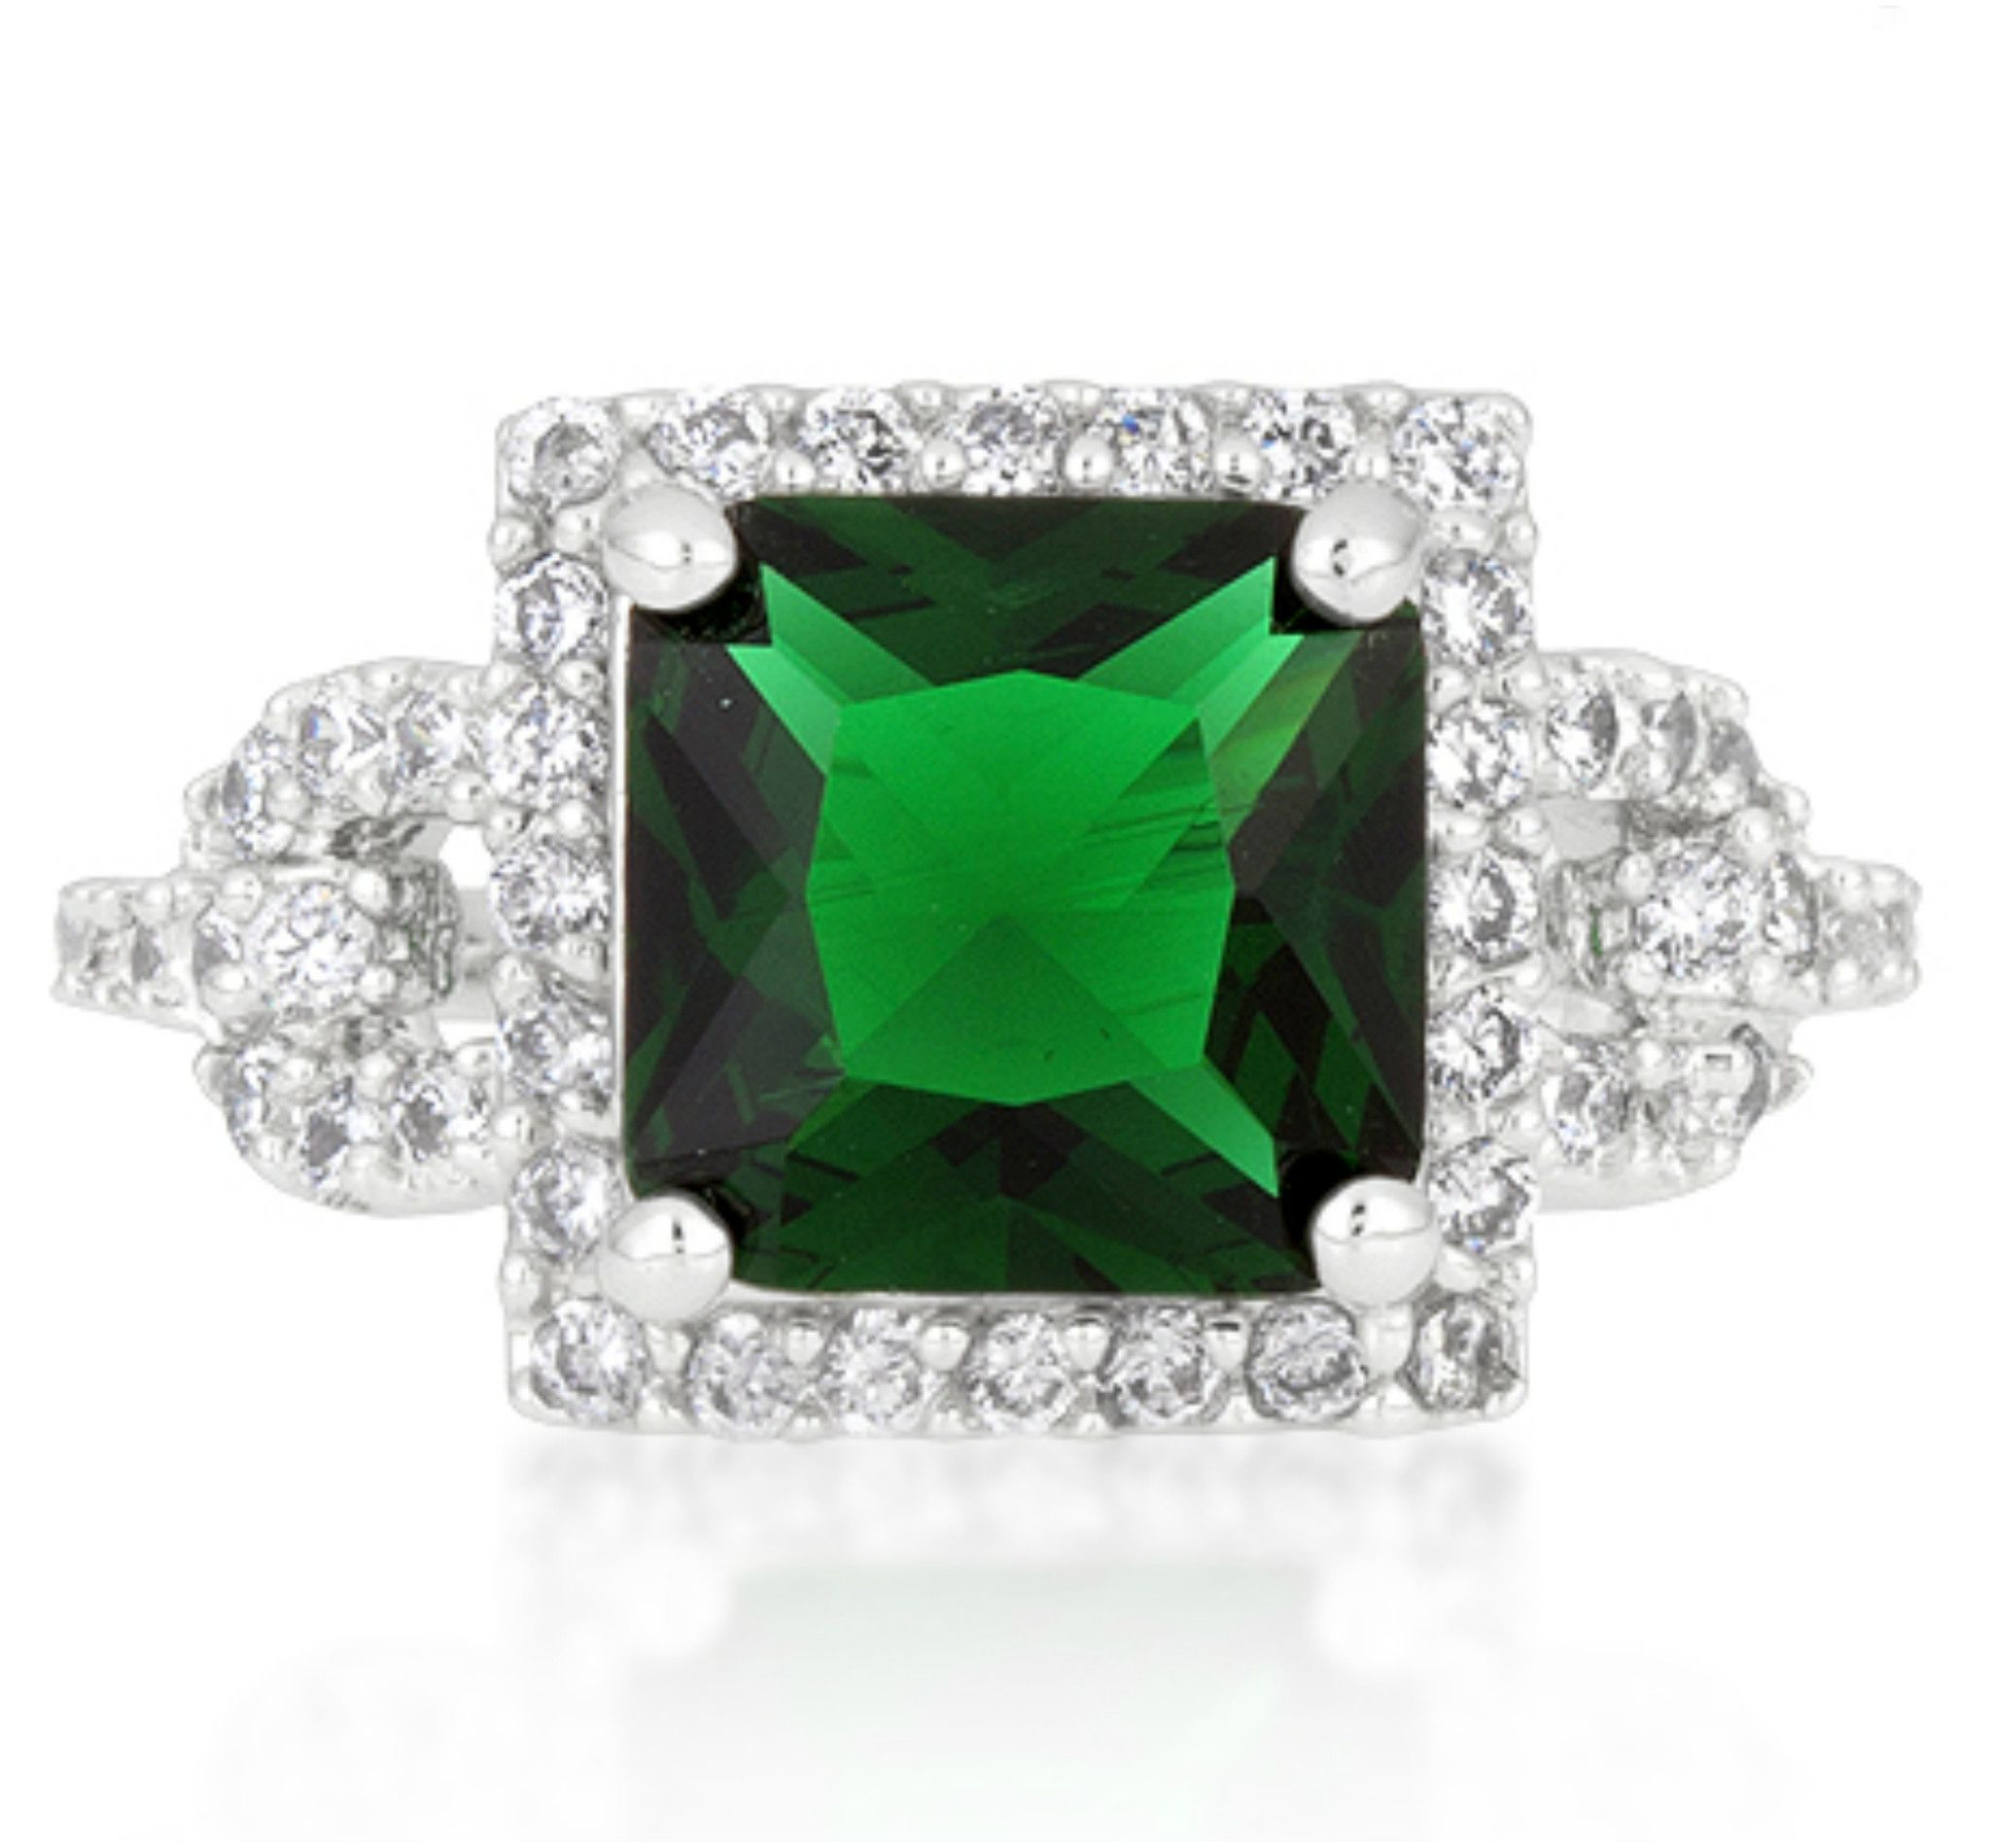 emerald engagement at spo ashley author diamond engagment adiamor ring cut custom halo of page radiant blog